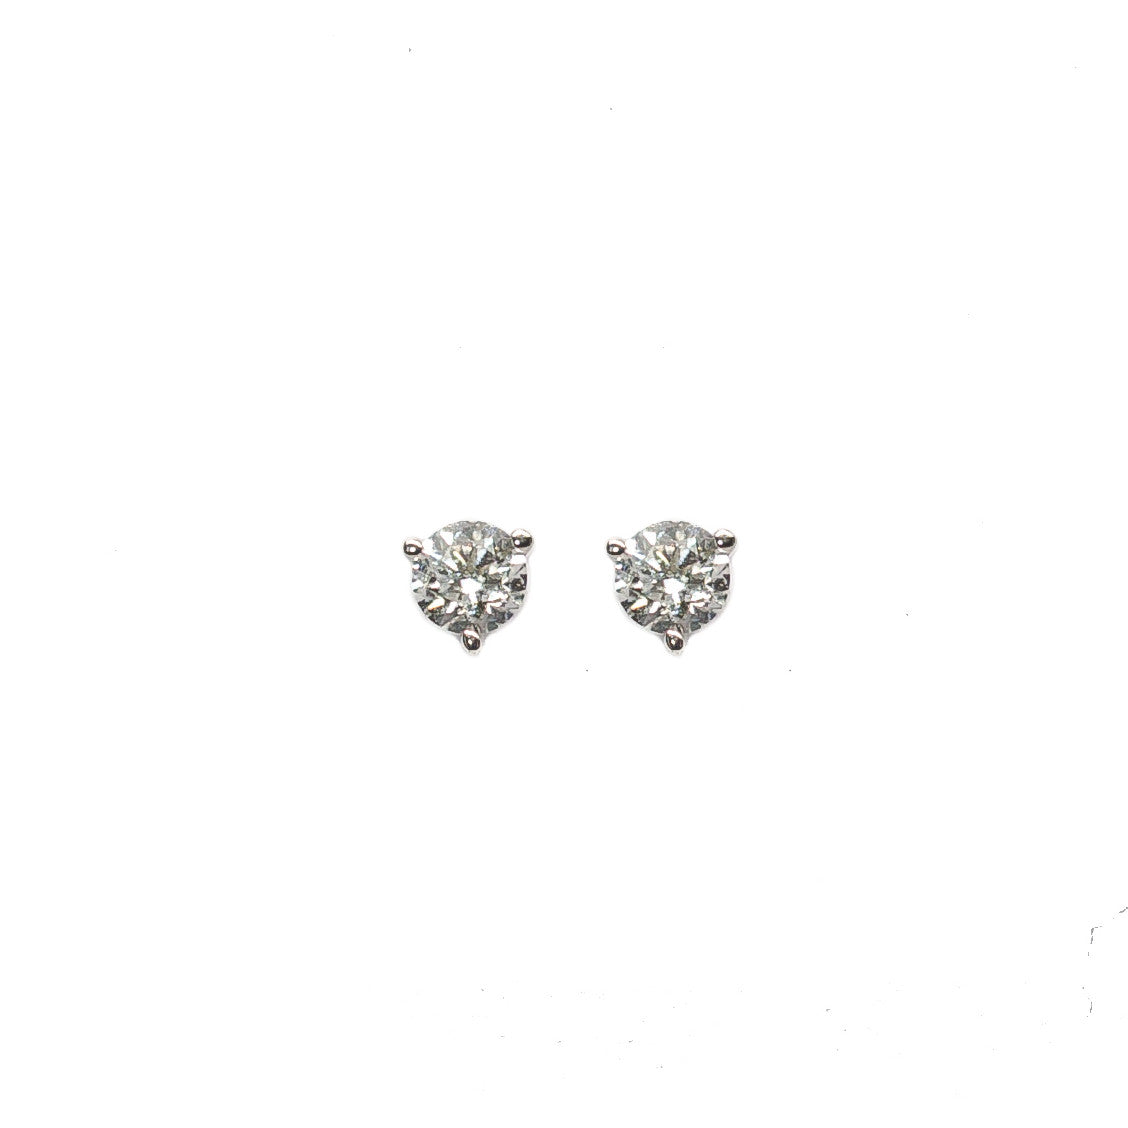 diamondwomensstuds studs stud diamond white pin earring ct gold bluejewels prong